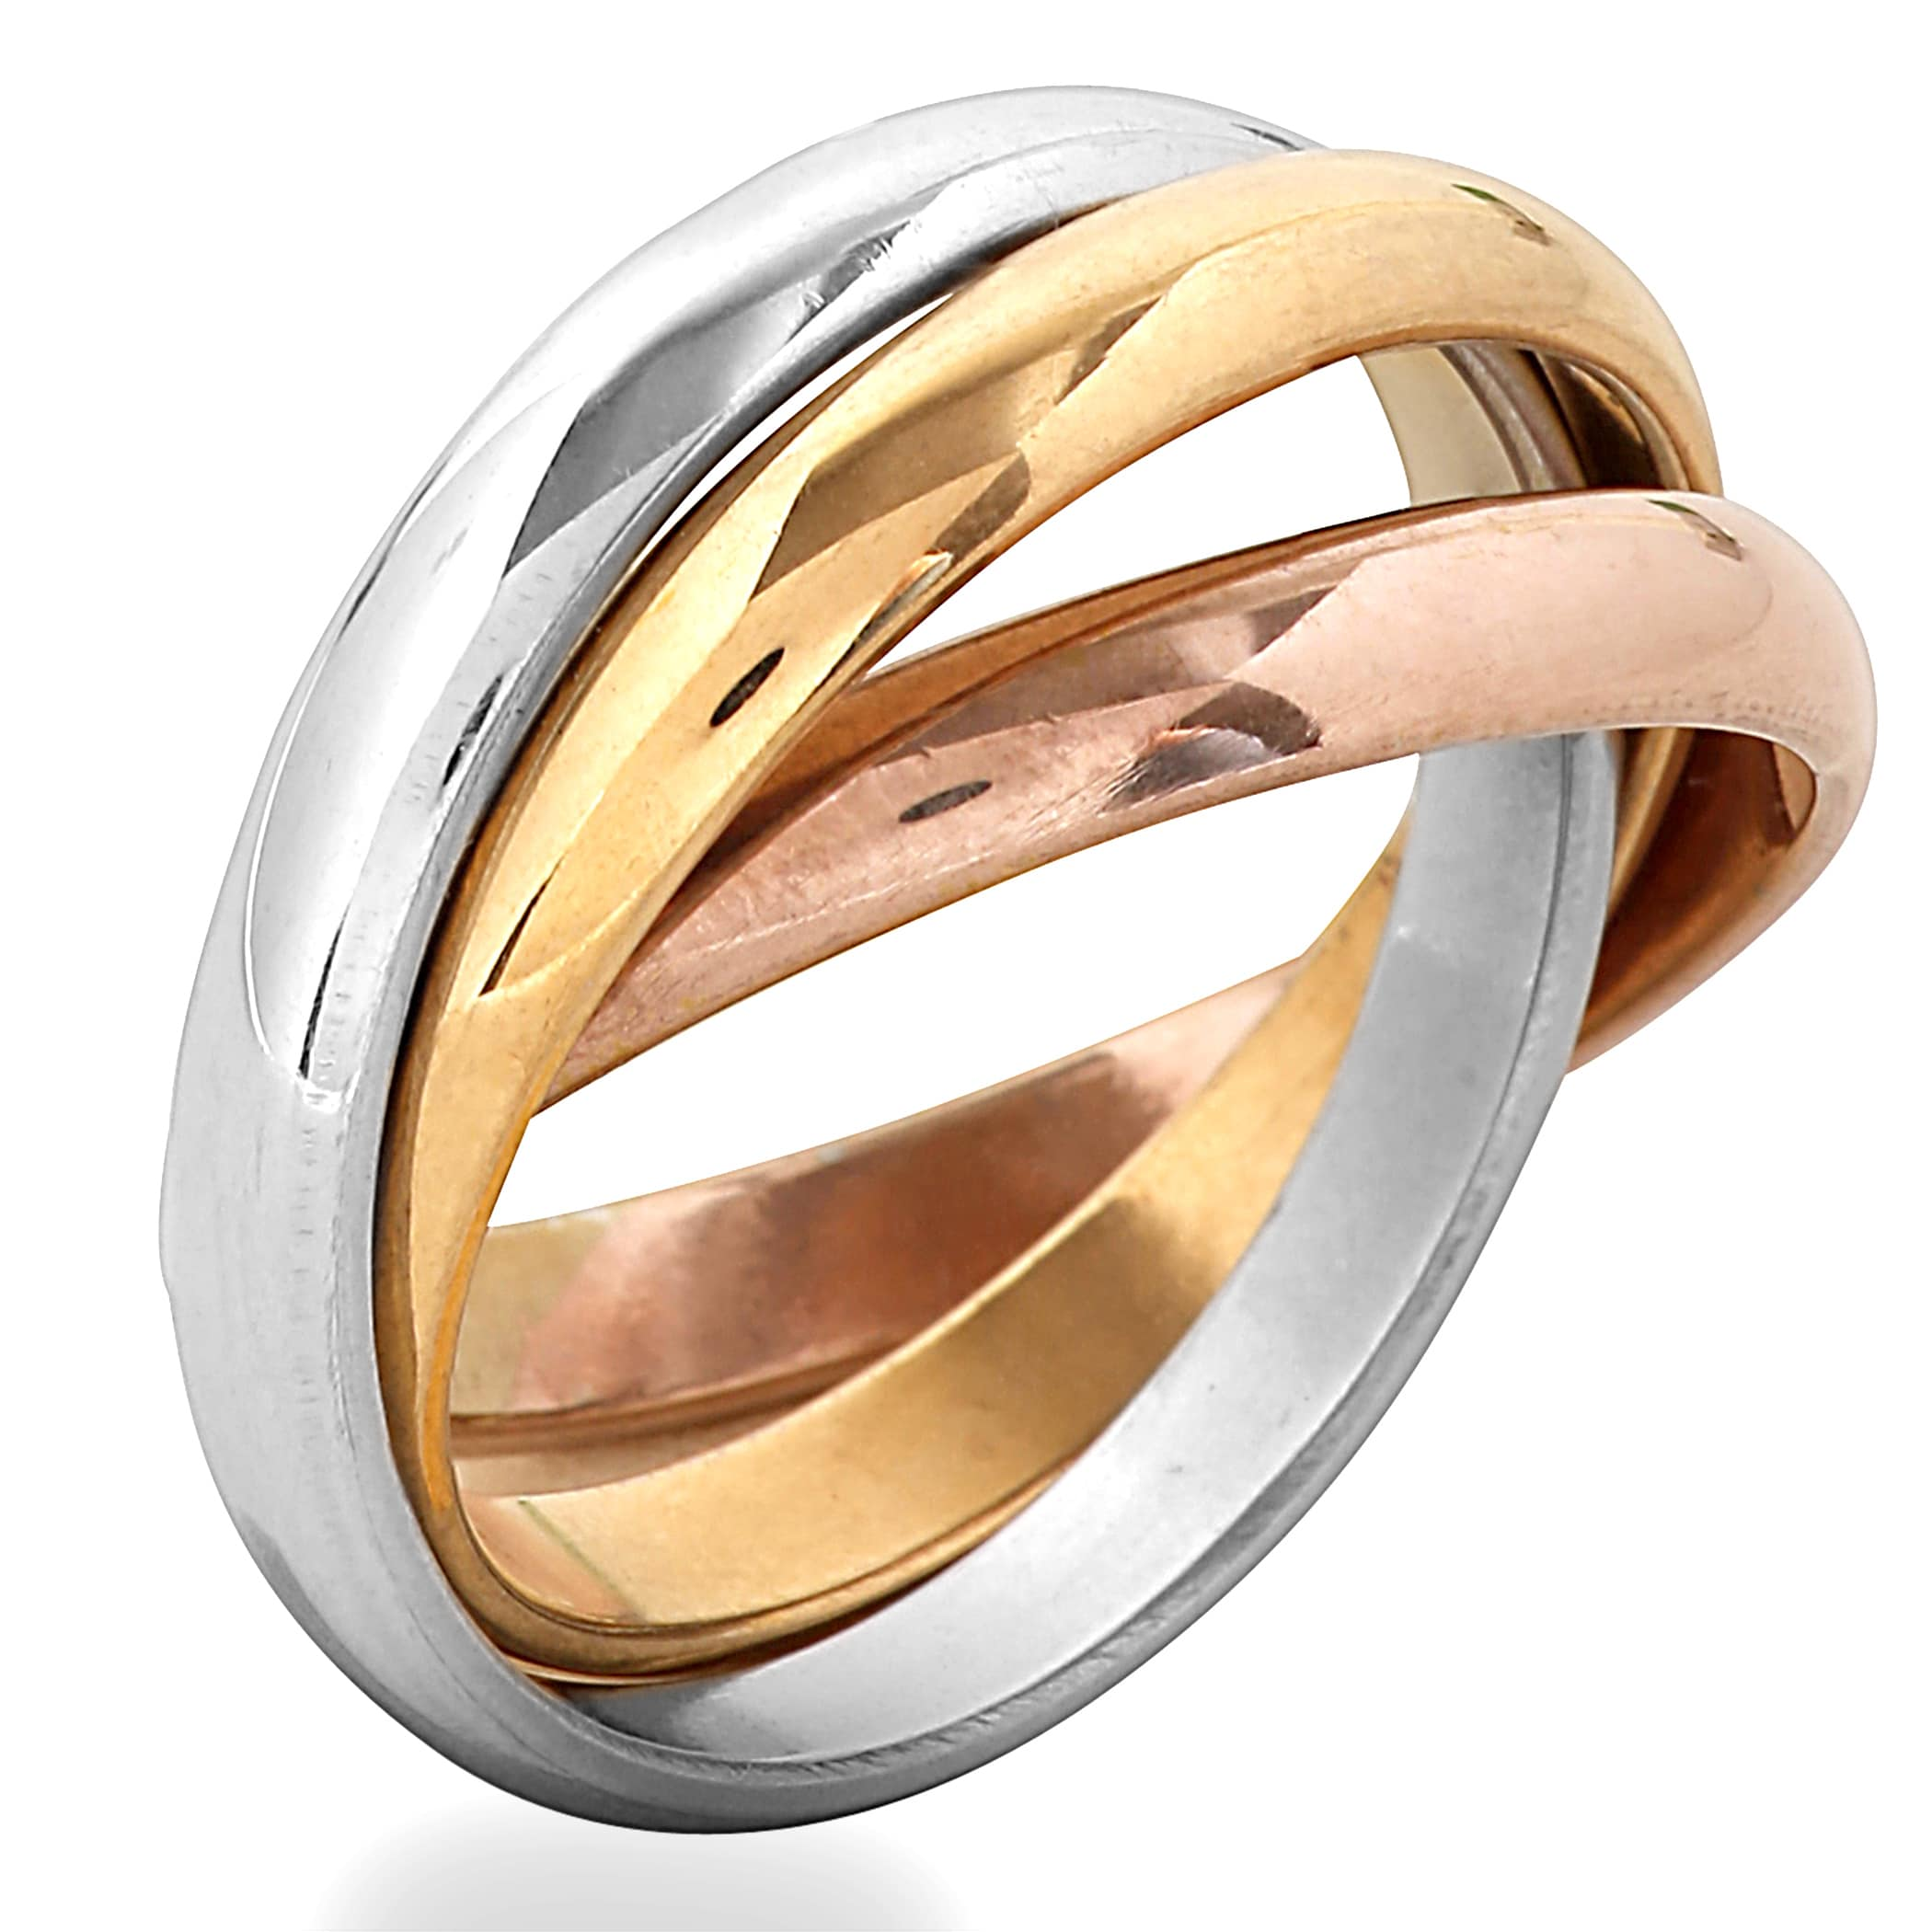 color fit pc rings tri rope band htm wedding unisex comfort a gold shop braid store at